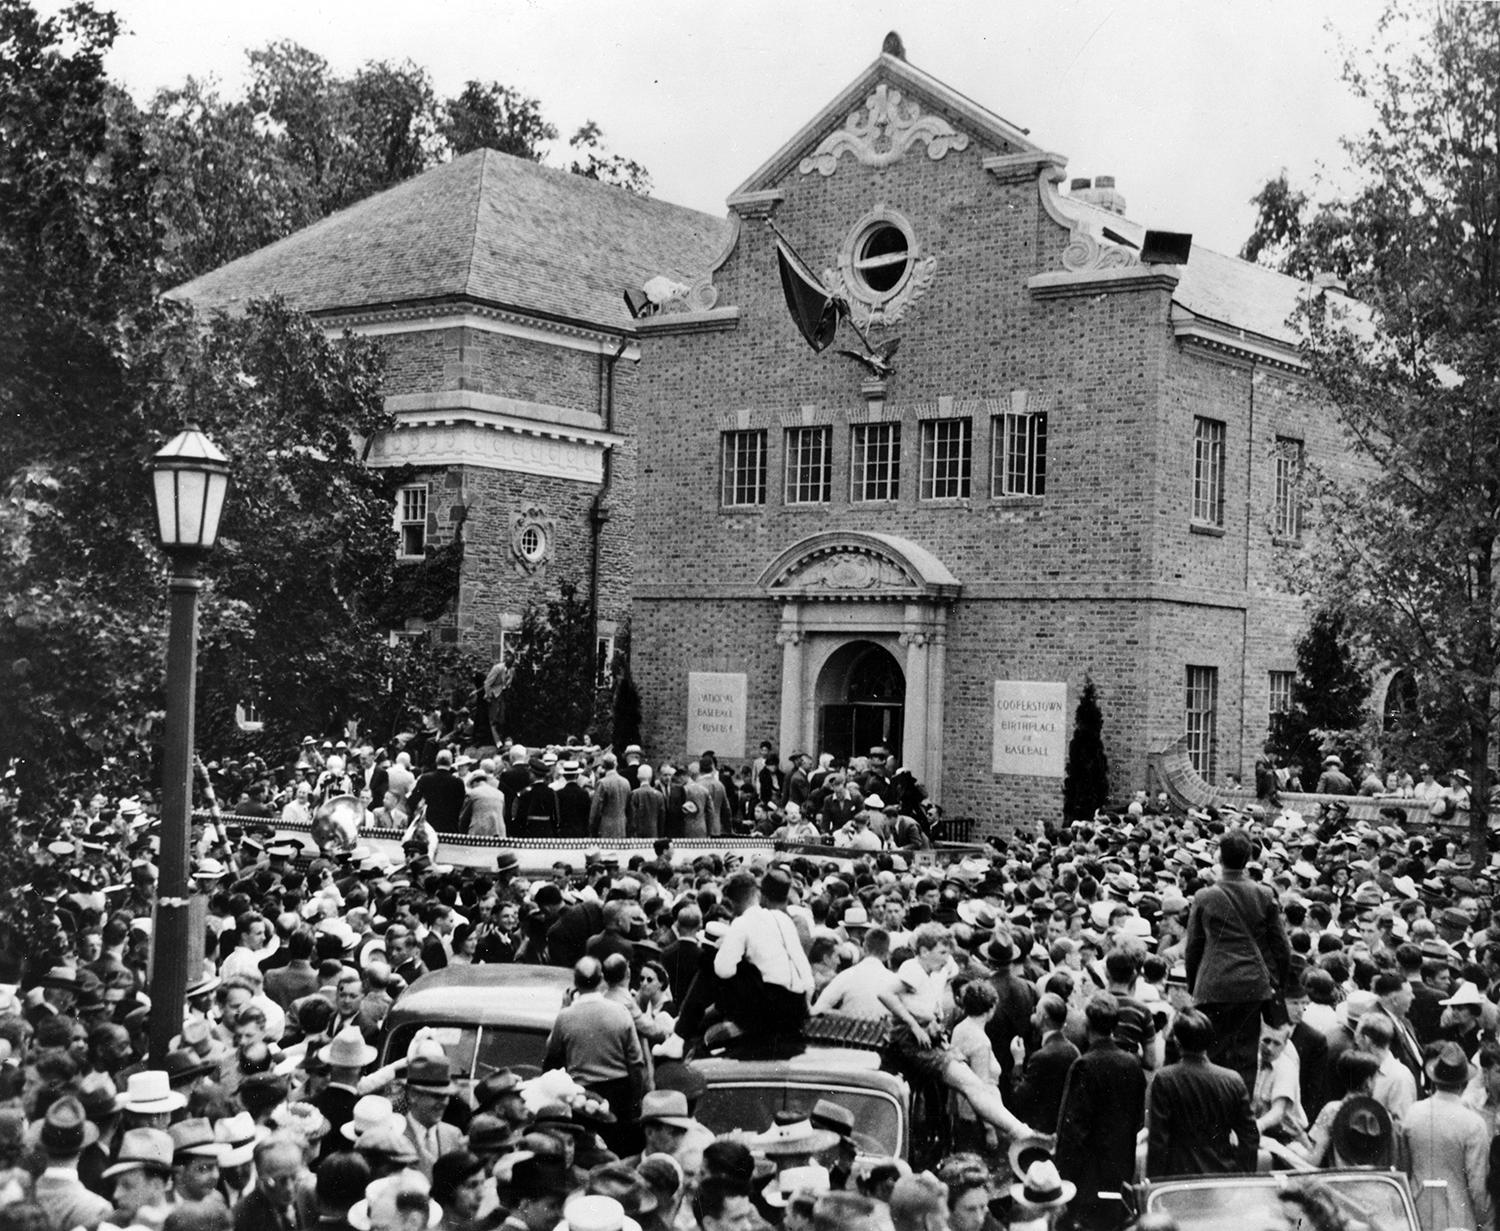 Fans line the streets of Cooperstown for the first Hall of Fame Induction in 1939. (Homer Osterhoudt / National Baseball Hall of Fame and Museum)